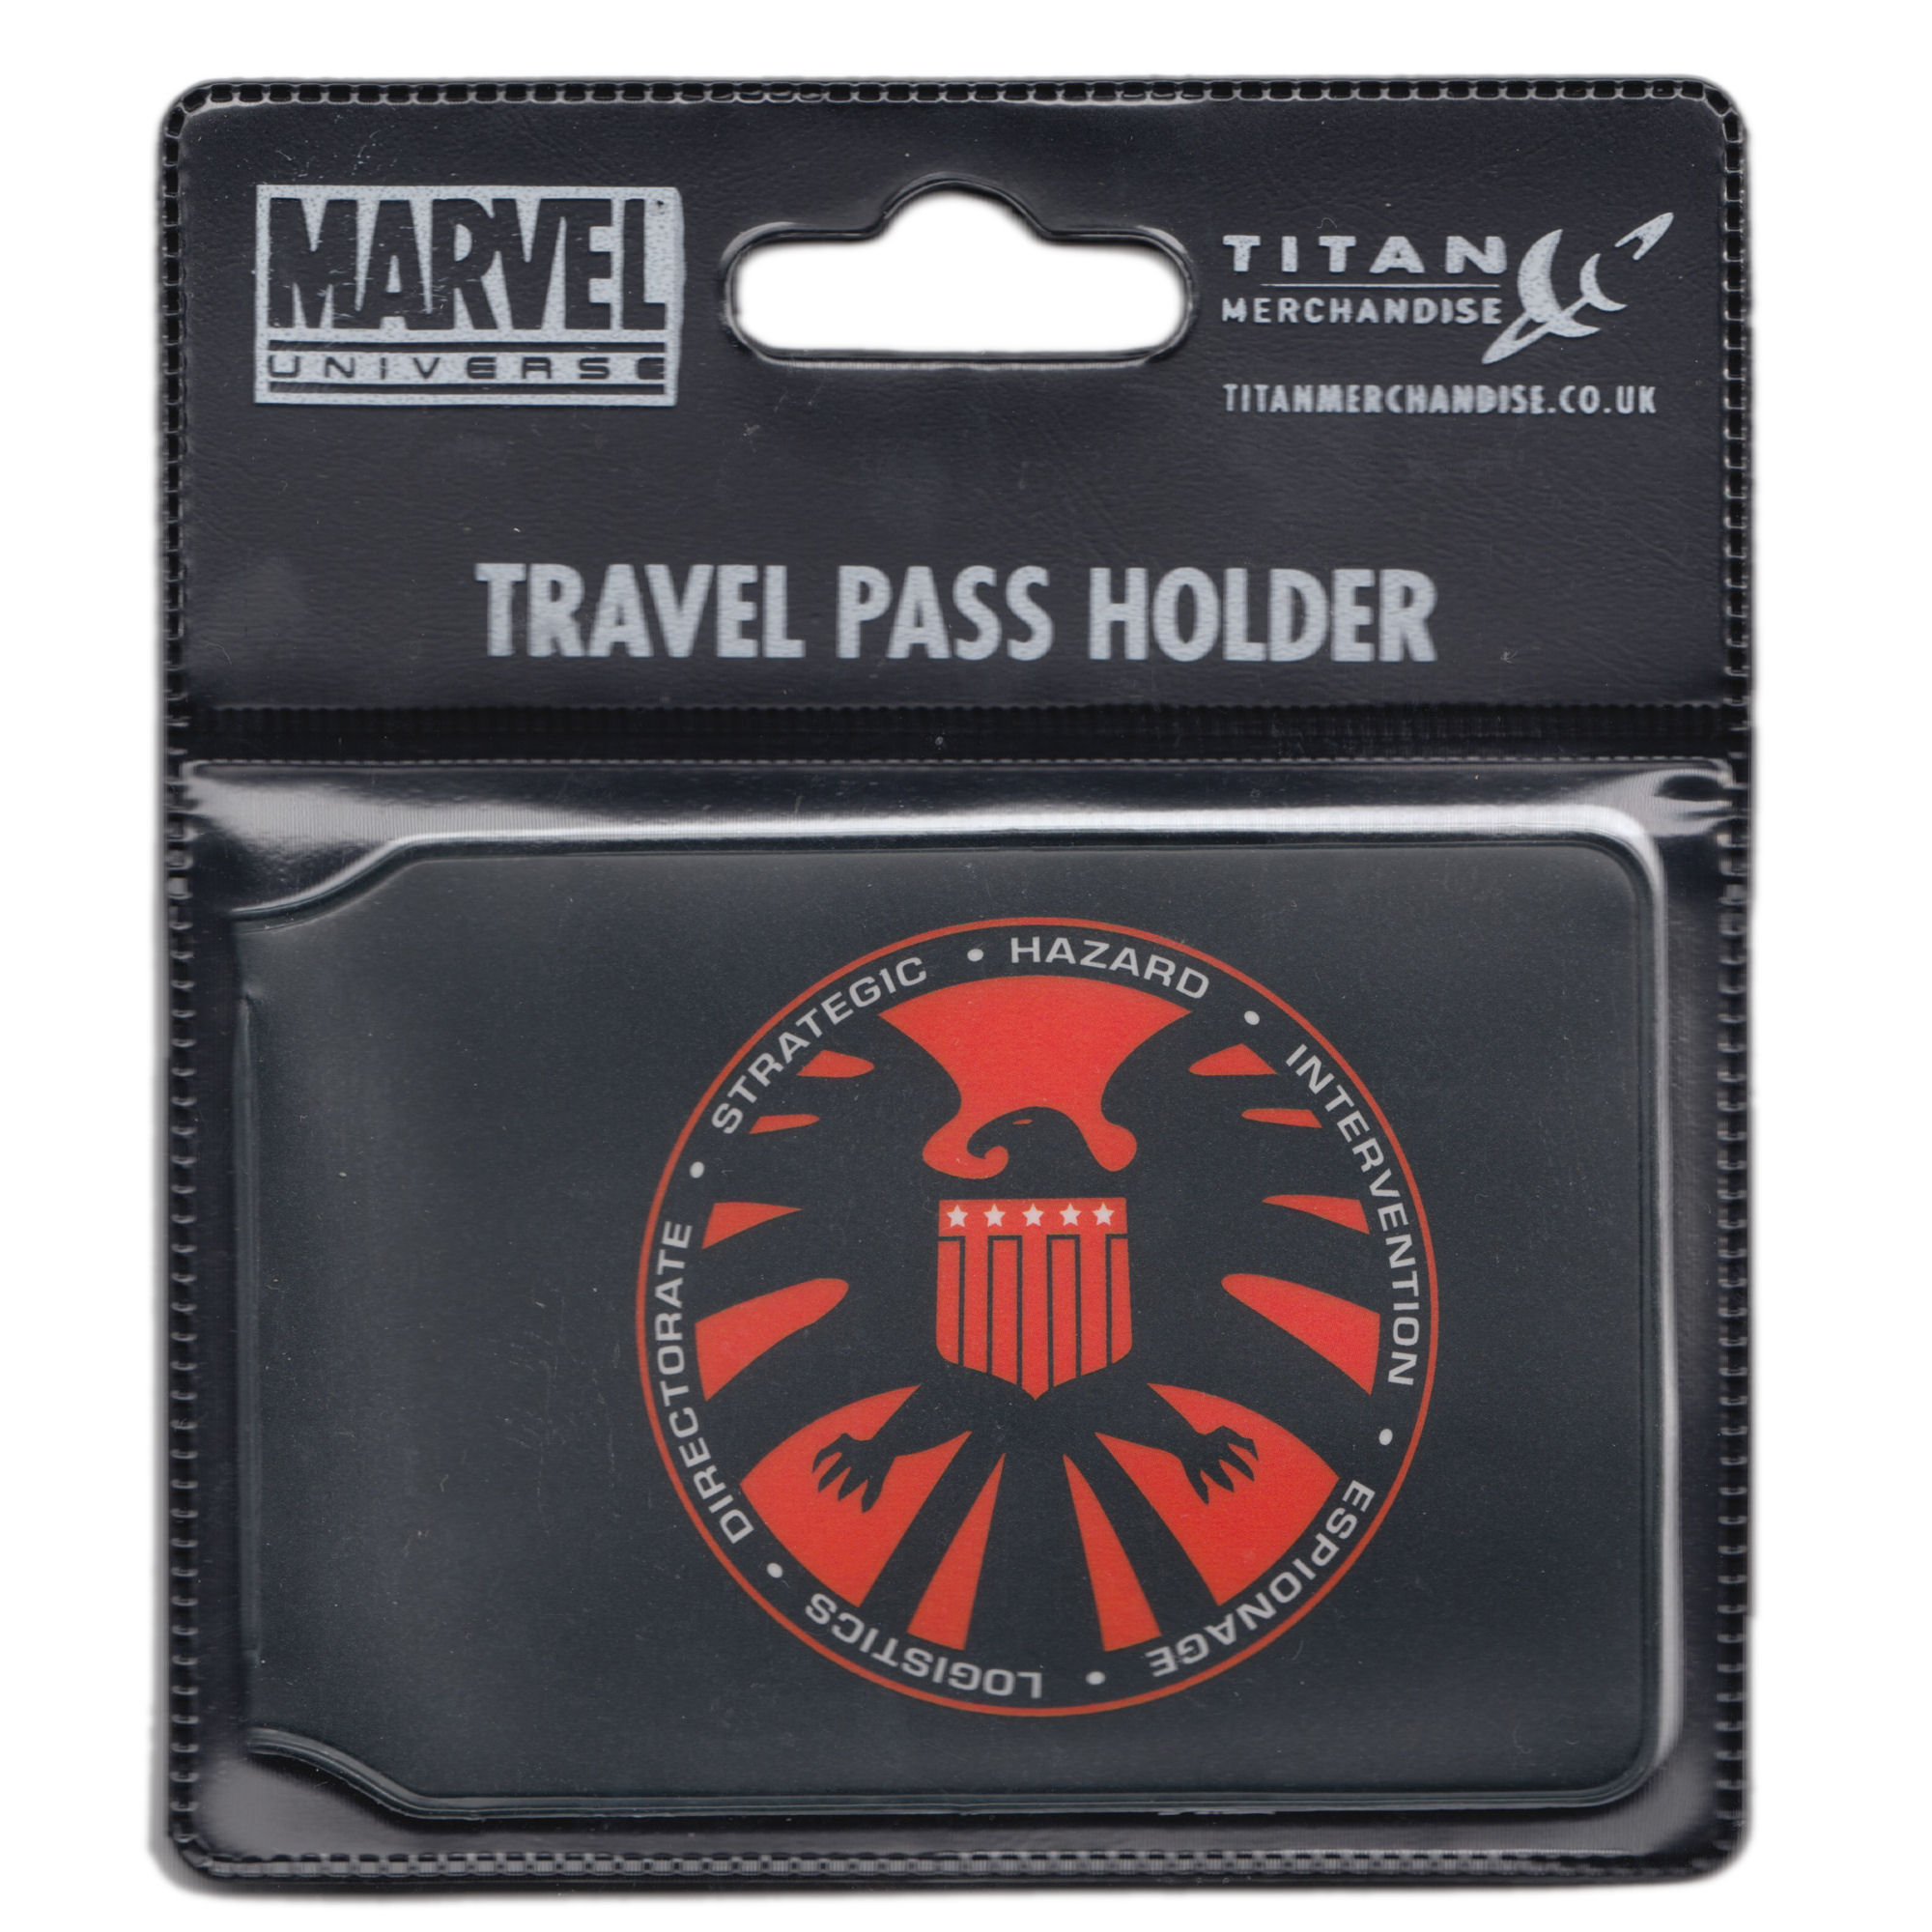 NEW SHIELD LOGO OYSTER TRAVEL CARD HOLDER BUS TRAIN MARVEL NICK FURY GIFT PASS